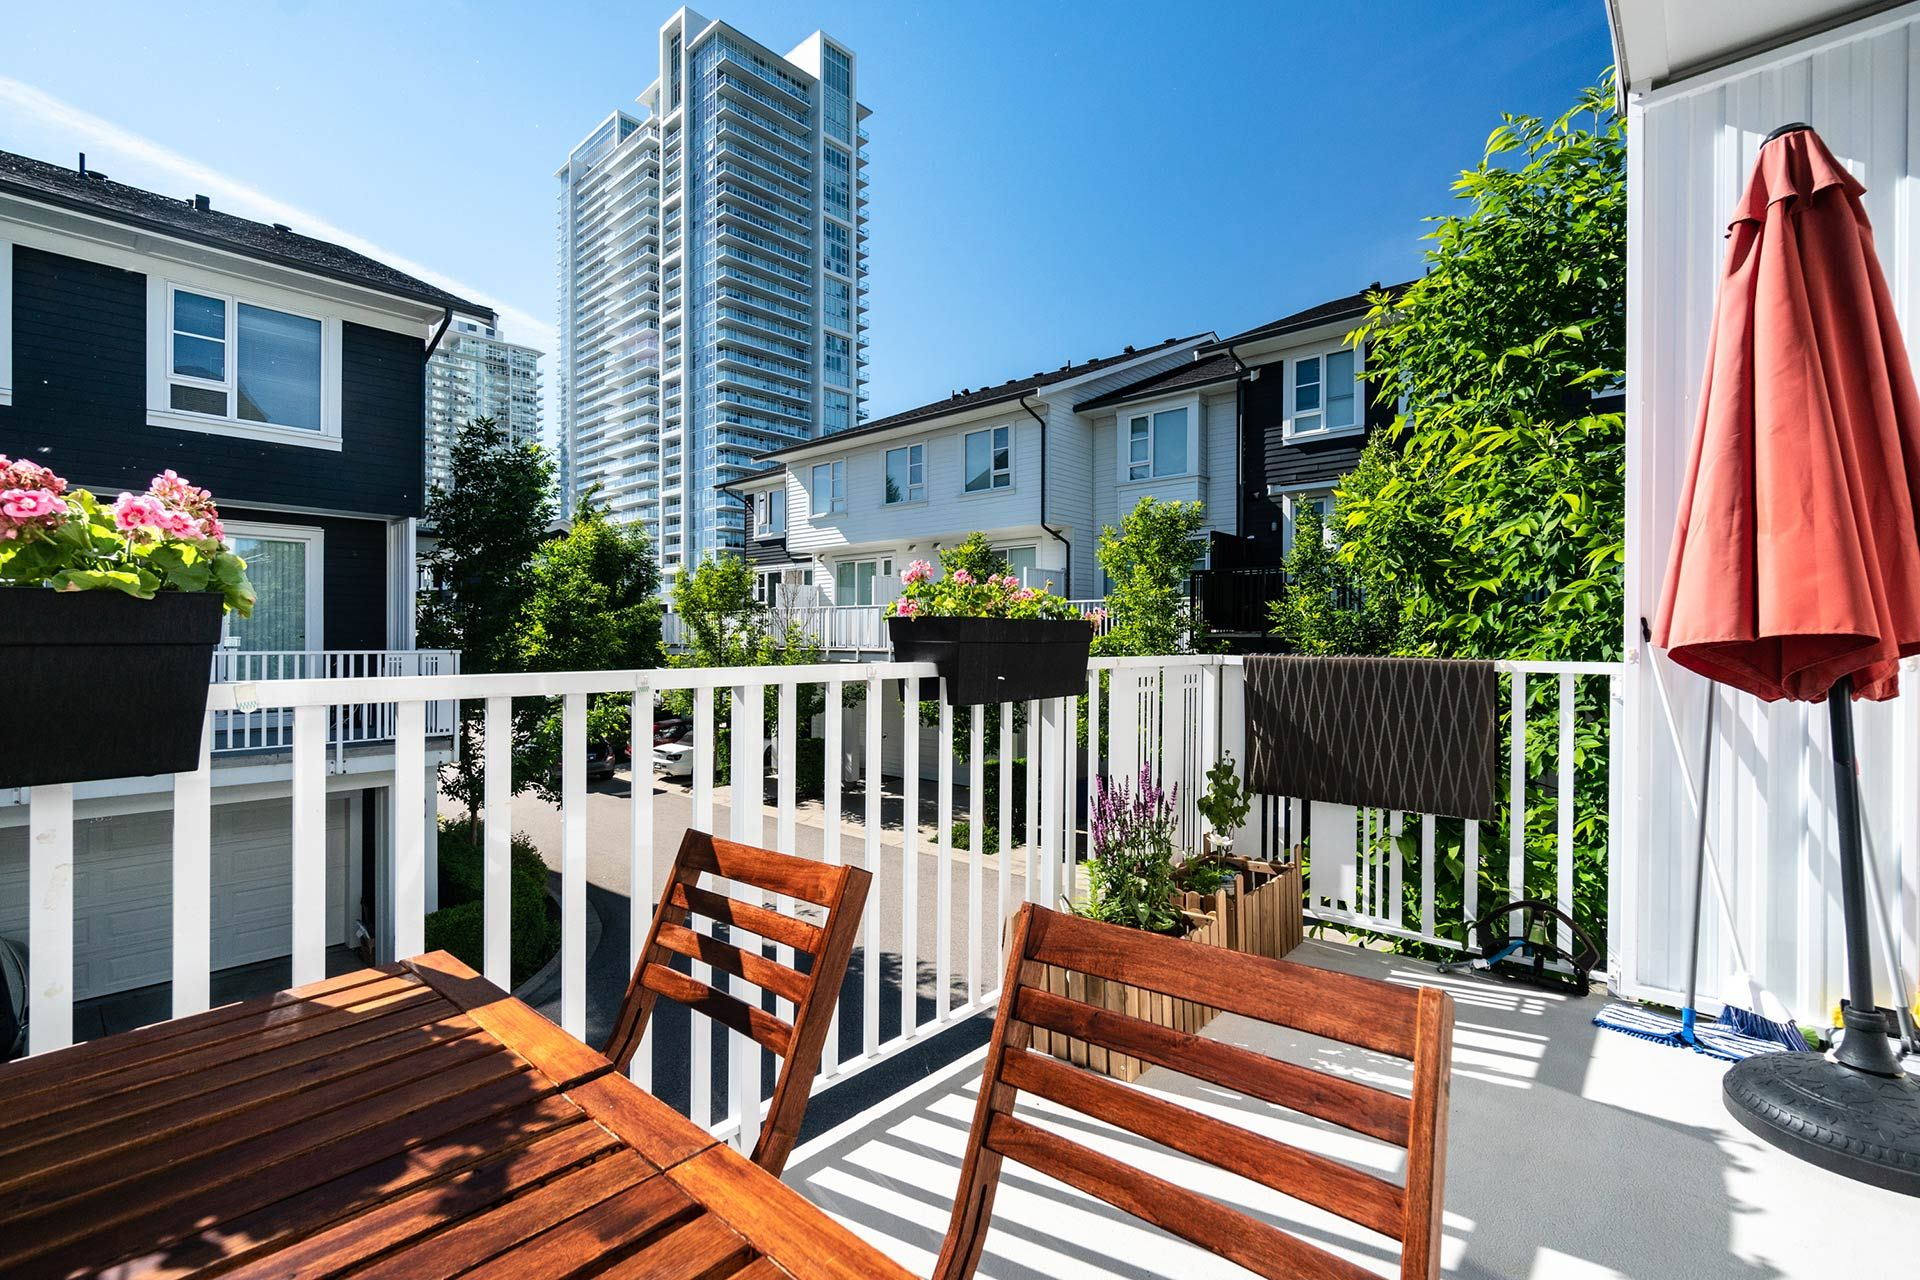 """Photo 21: Photos: 154 548 FOSTER Avenue in Coquitlam: Coquitlam West Townhouse for sale in """"BLACK + WHITE"""" : MLS®# R2587208"""